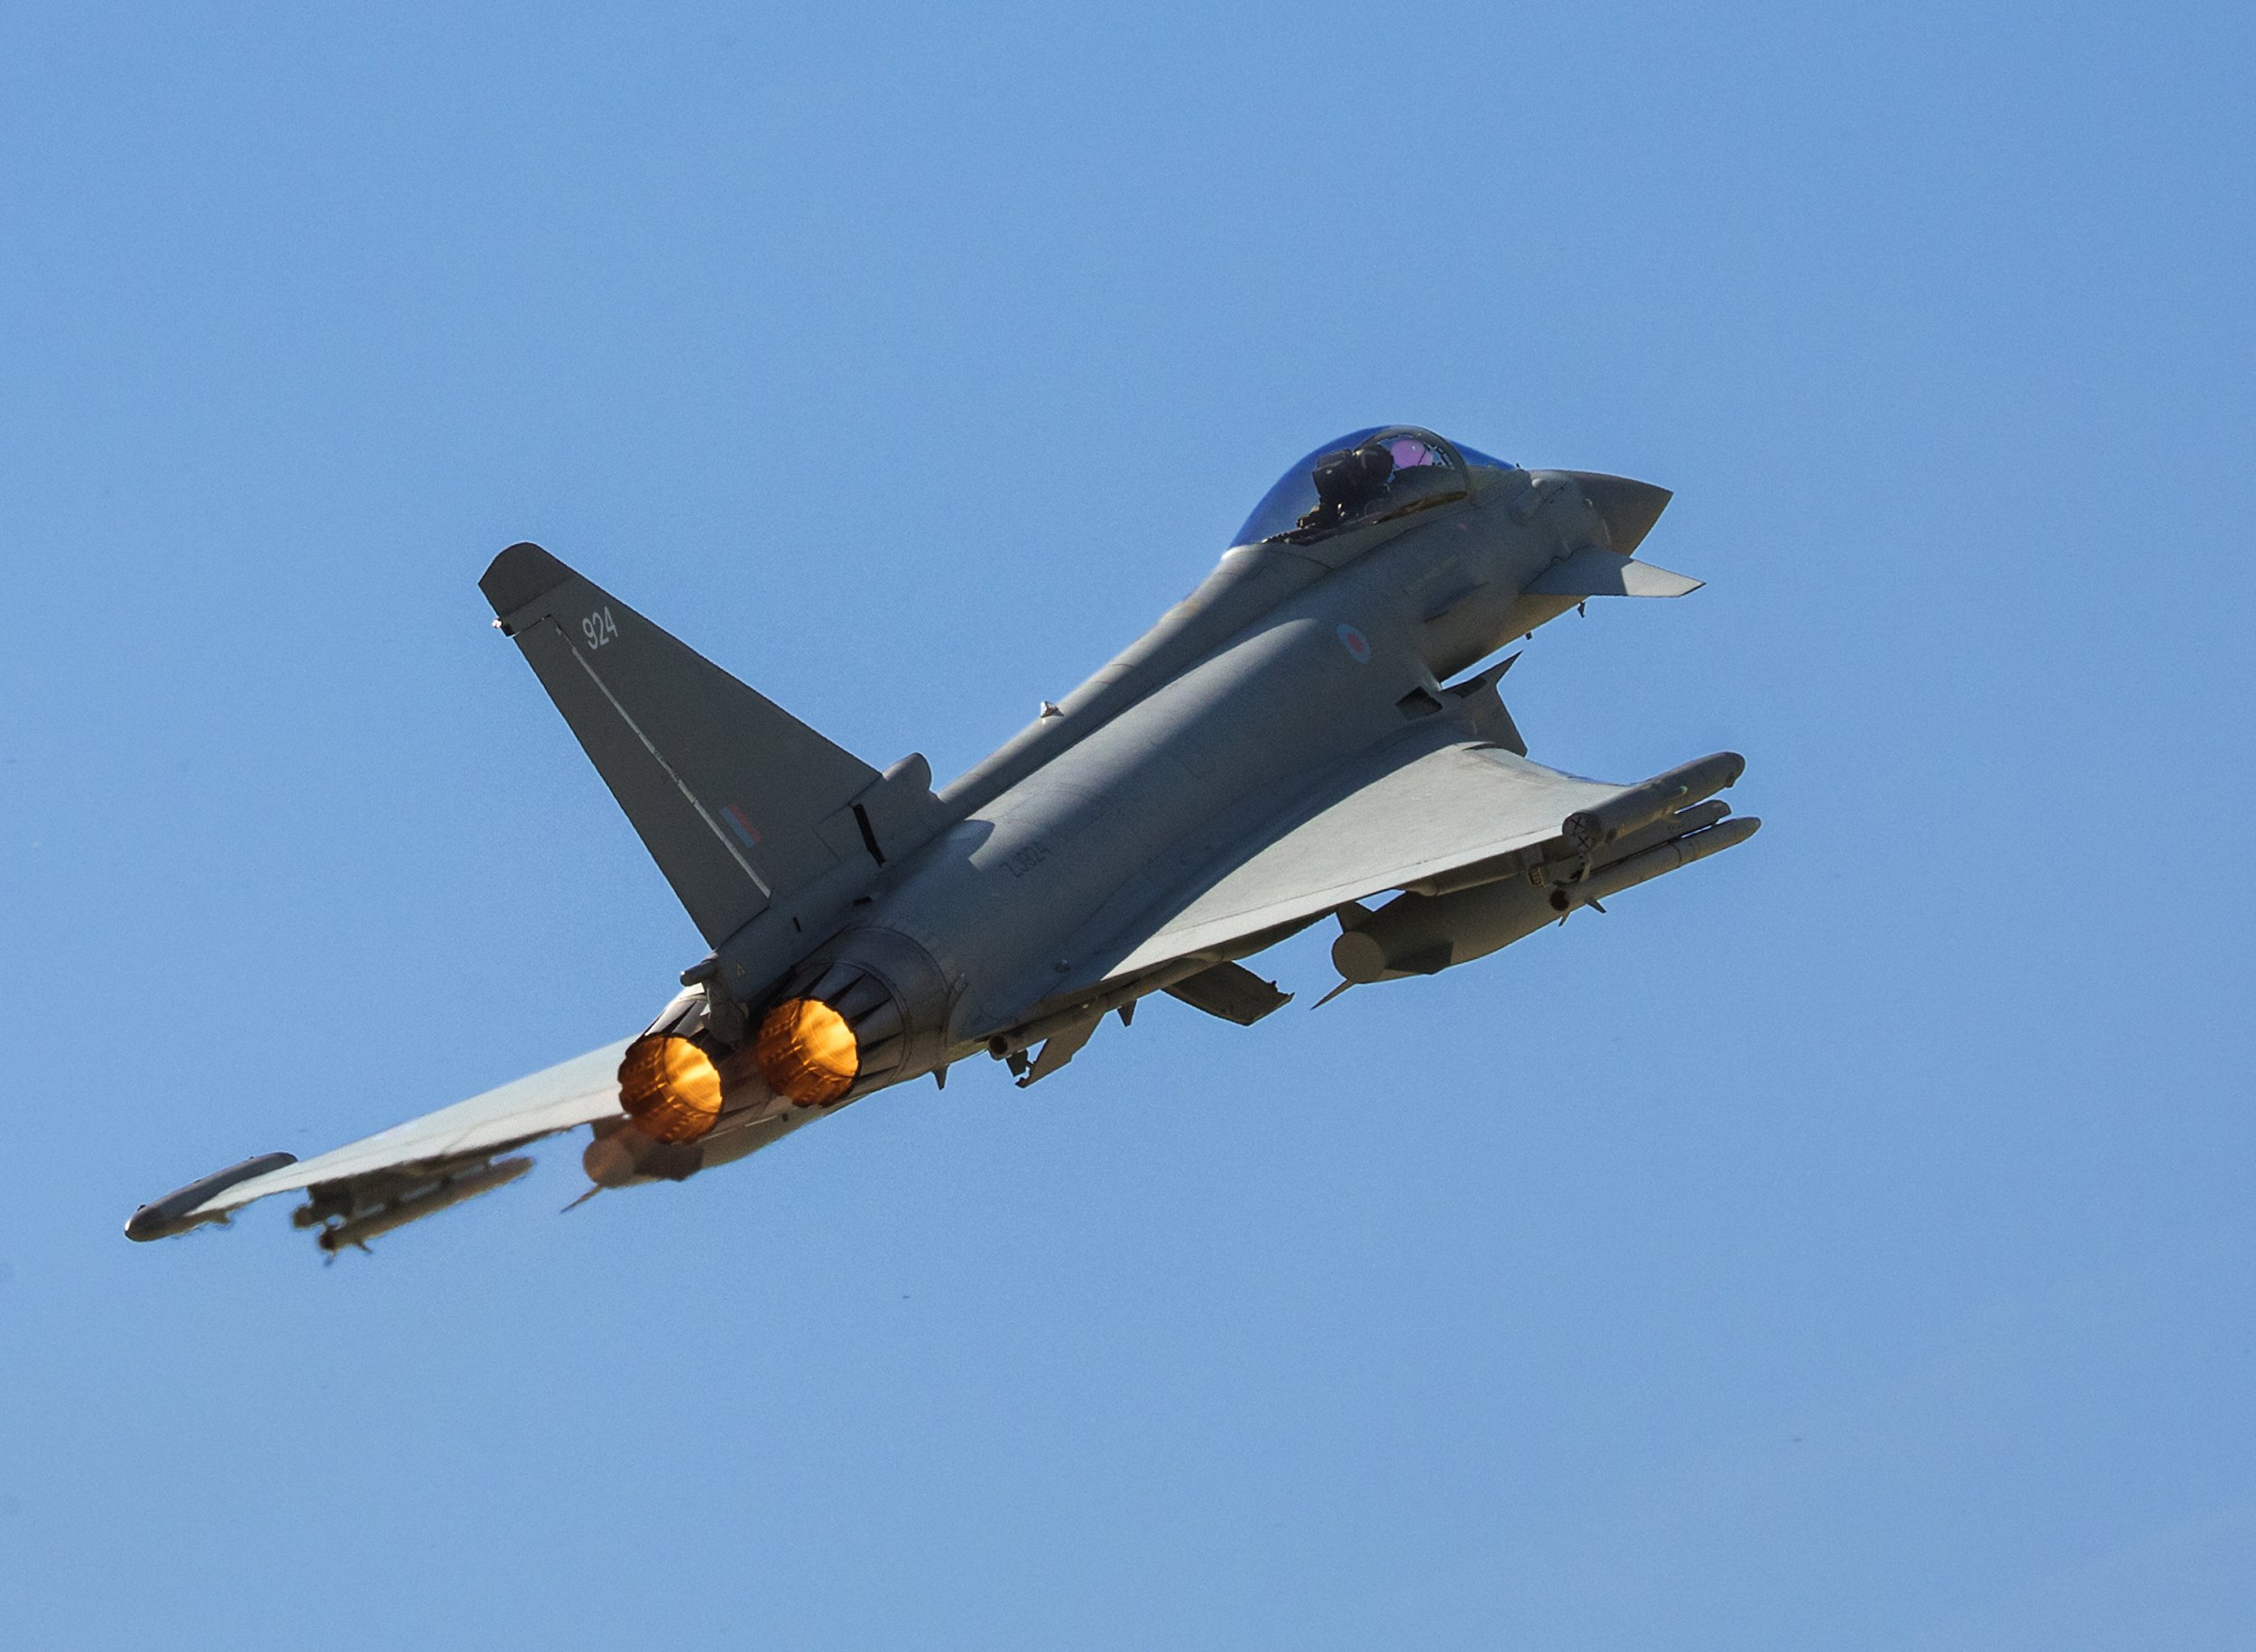 RAF Typhoons catch Russians flying where they shouldn't for second time this week